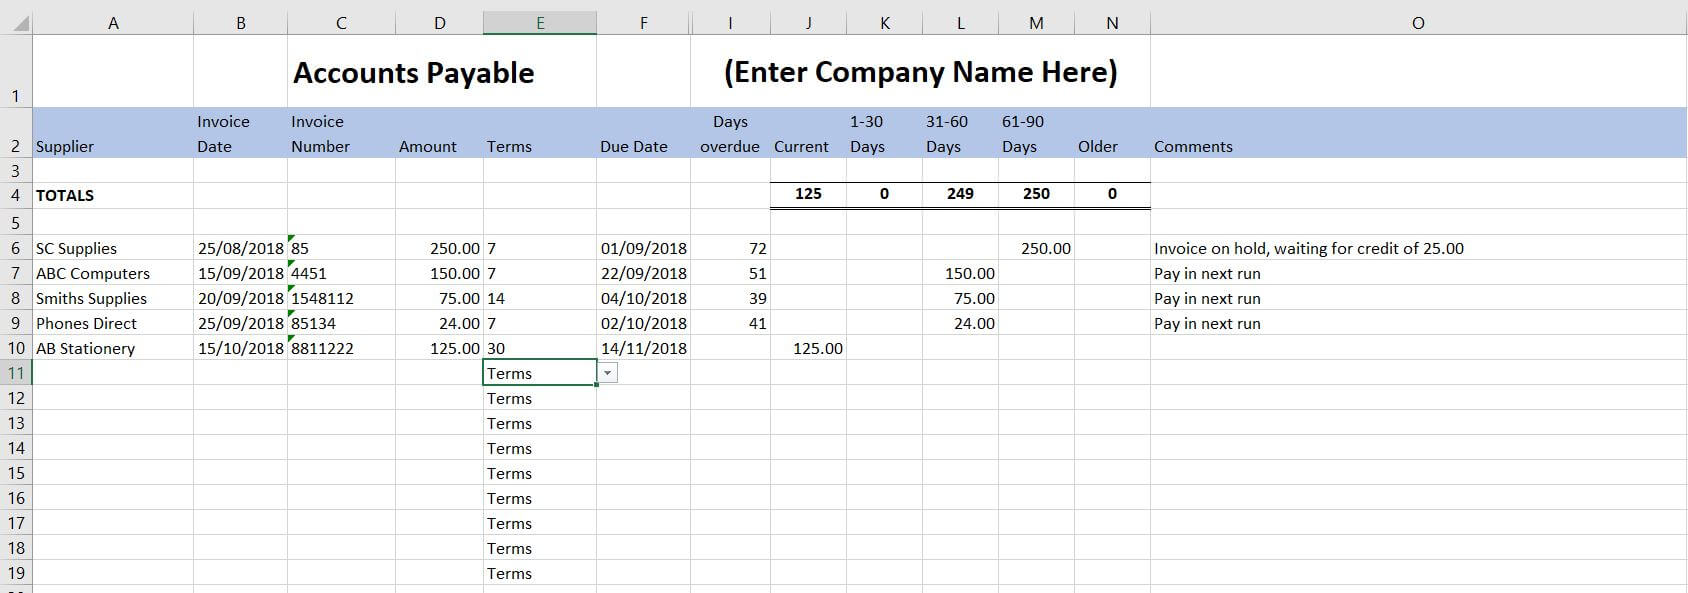 Free Excel Bookkeeping Templates - 14 Accounts Spreadsheets With Bookkeeping For A Small Business Template